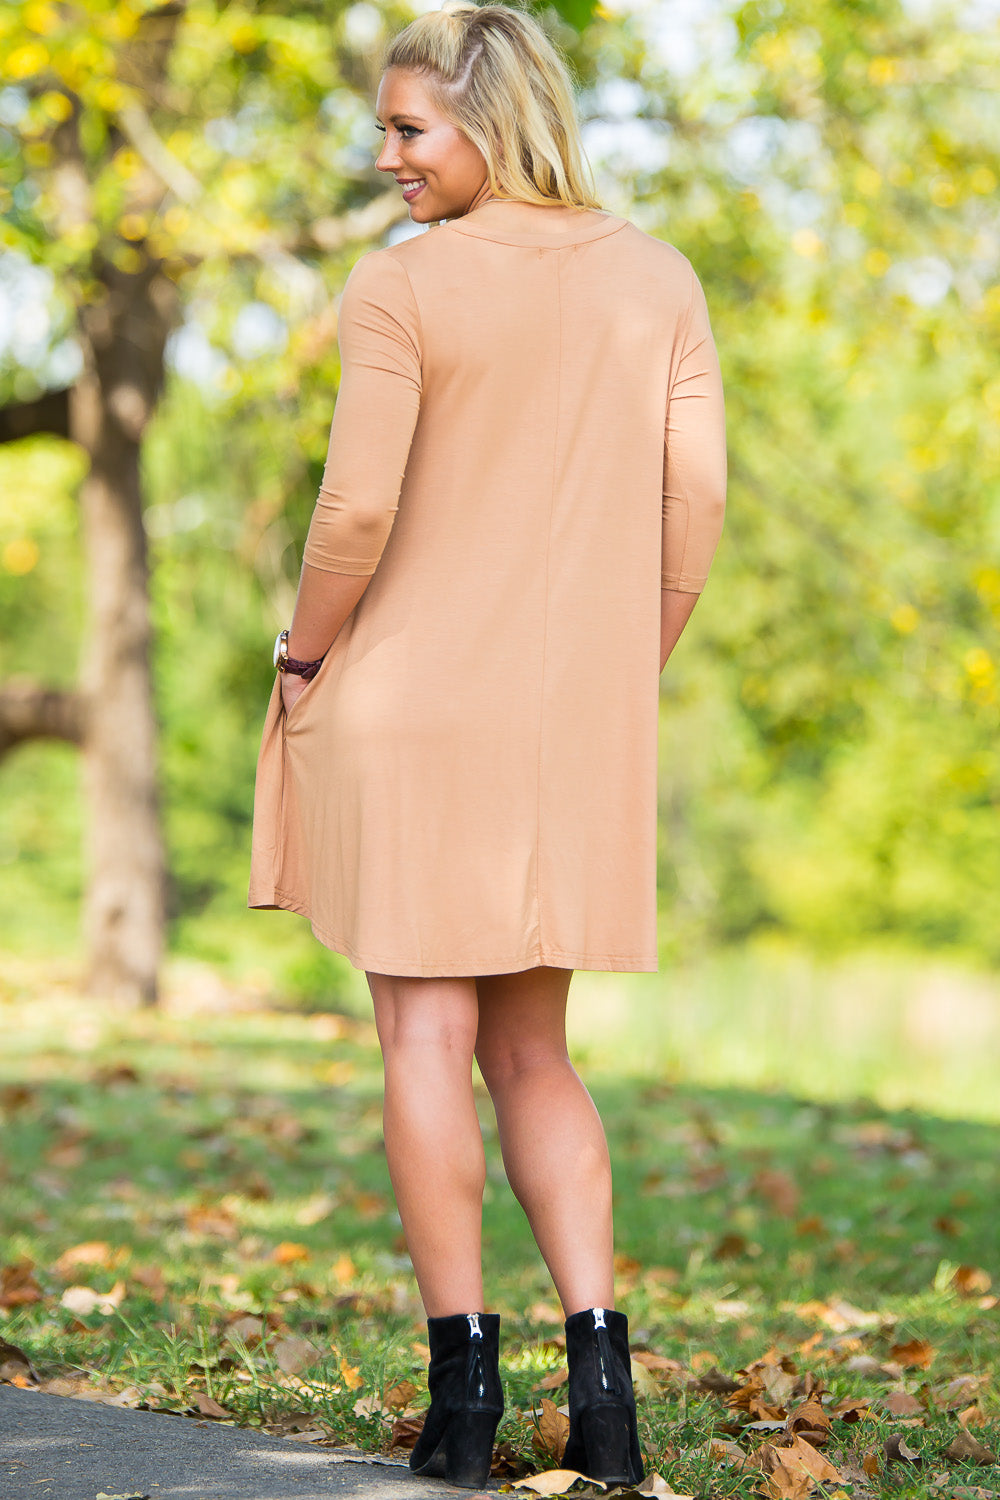 Piko 3/4 V-Neck Sleeve Swing Dress - Iced Coffee - Piko Clothing